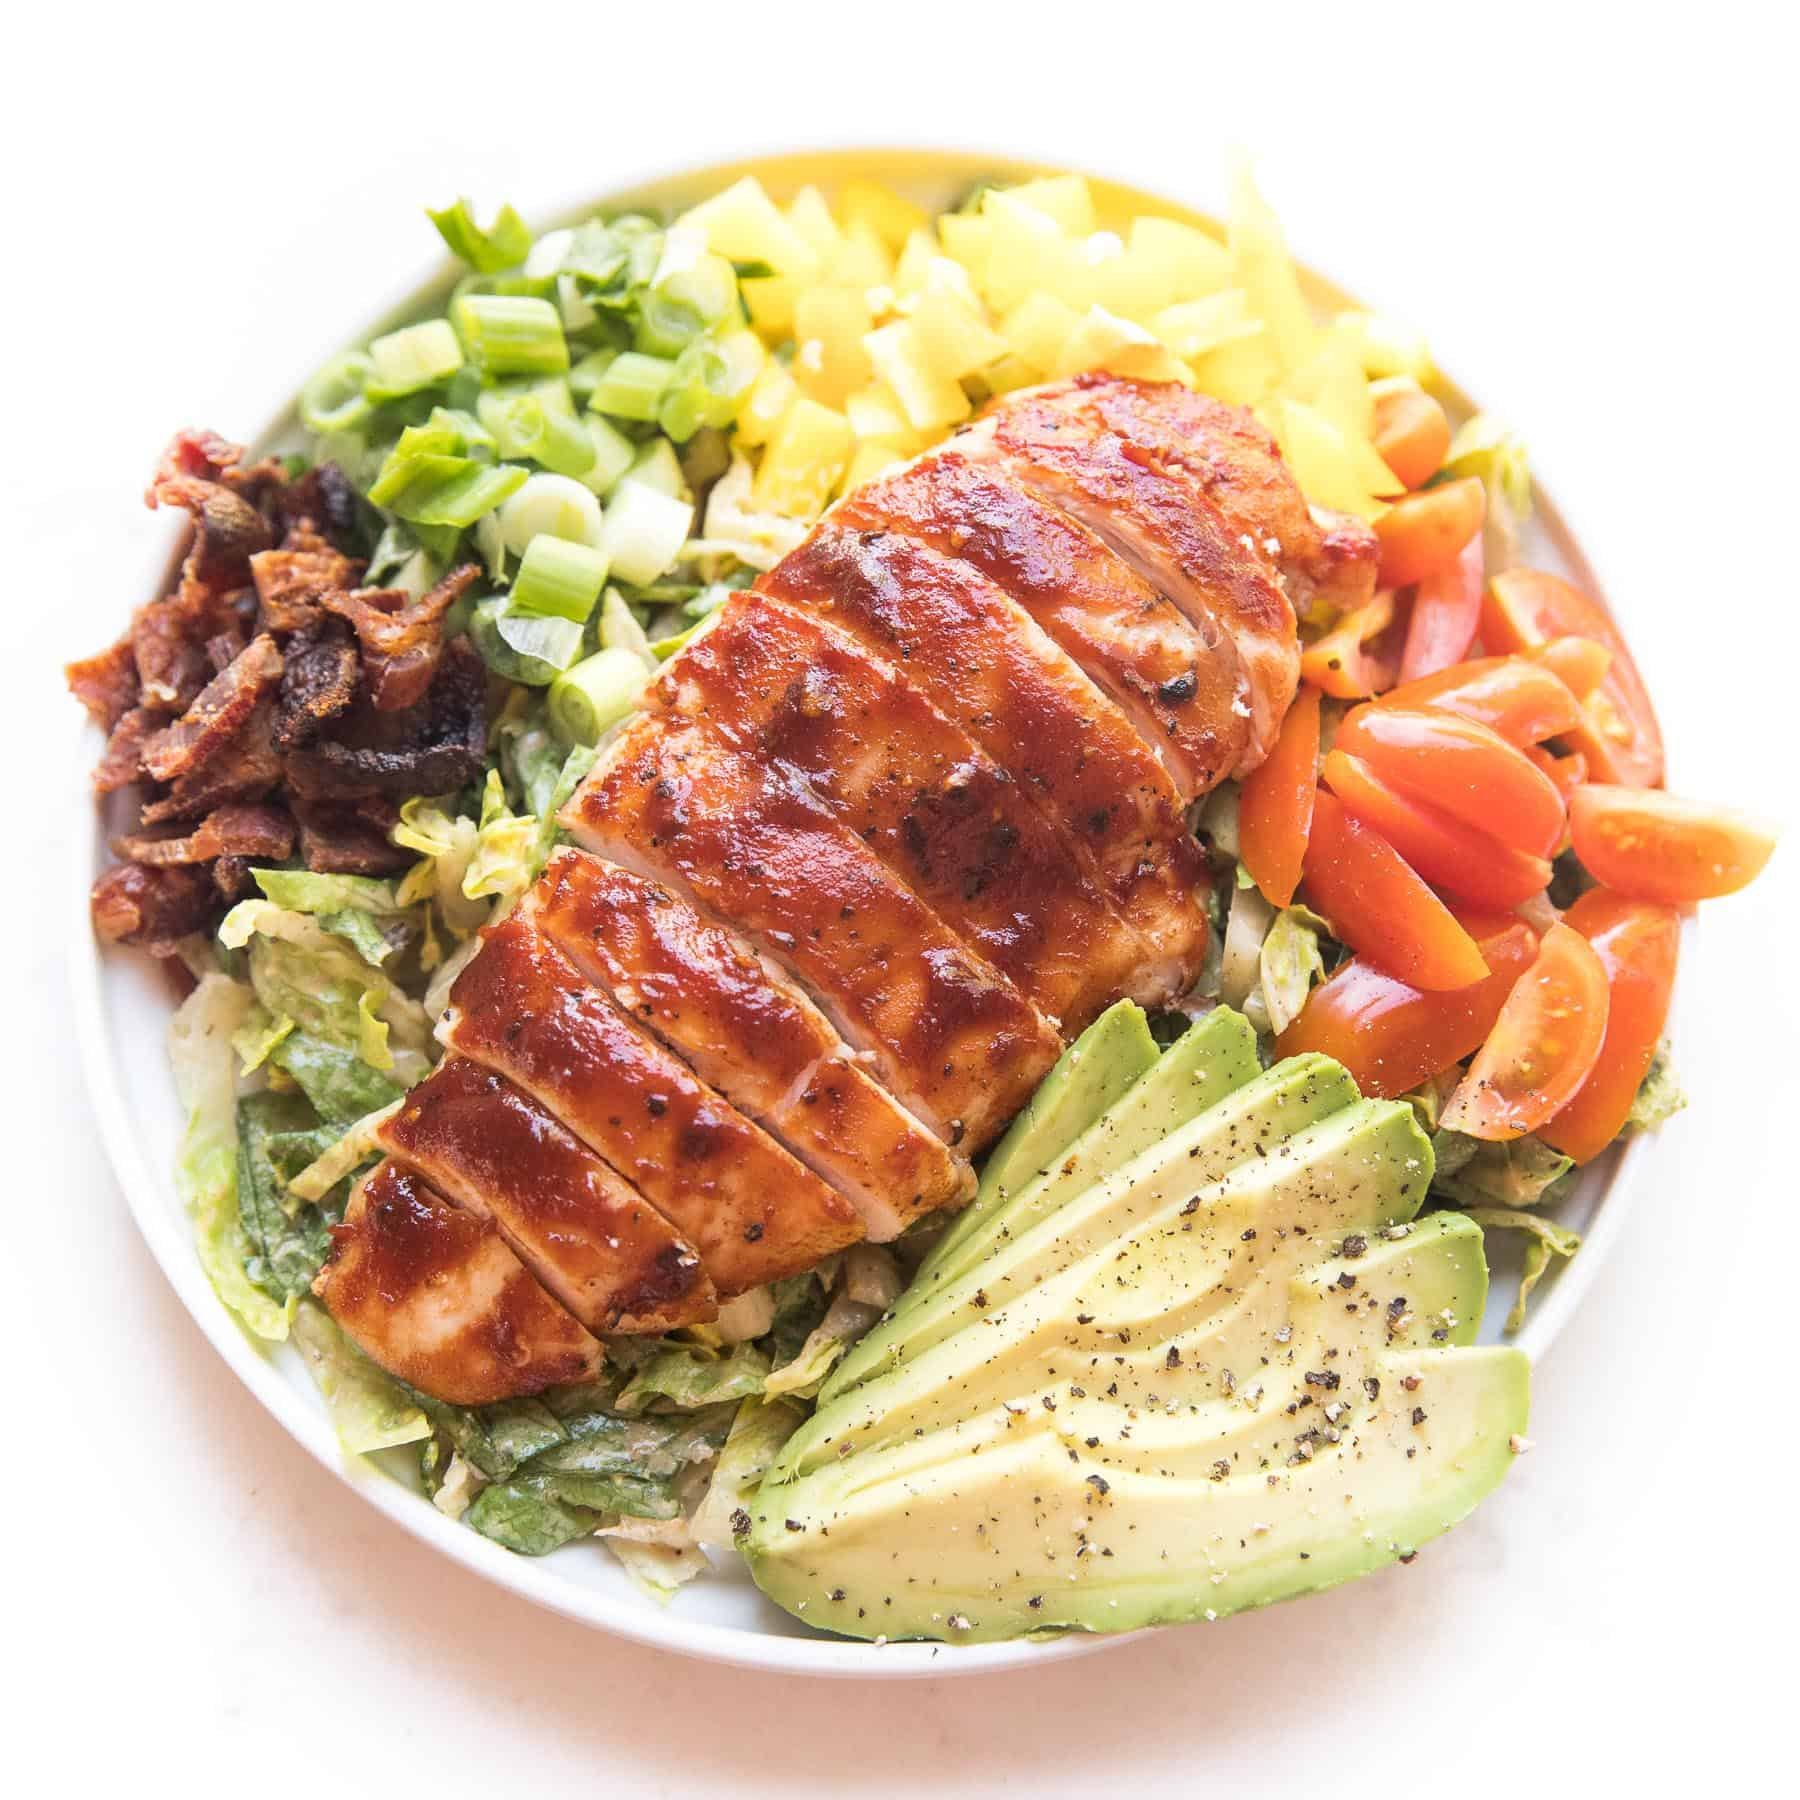 bbq chicken salad with avocado, bacon, bell pepper, tomatoes and green onions on a white plate and background